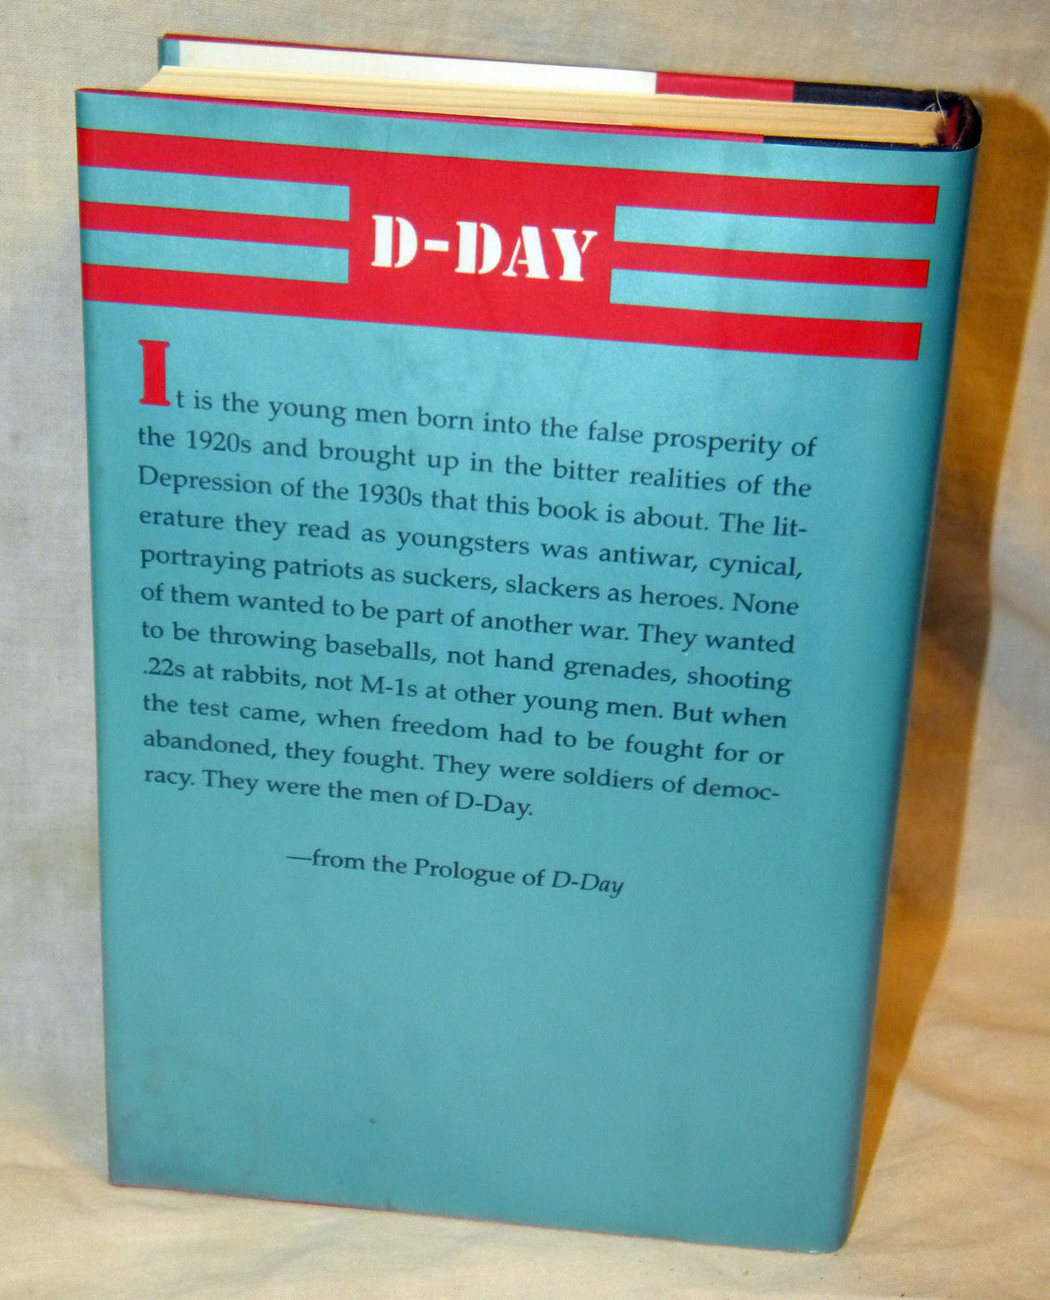 D-Day June 6, 1944: The Climactic Battle of World War II by Stephen E. Ambrose